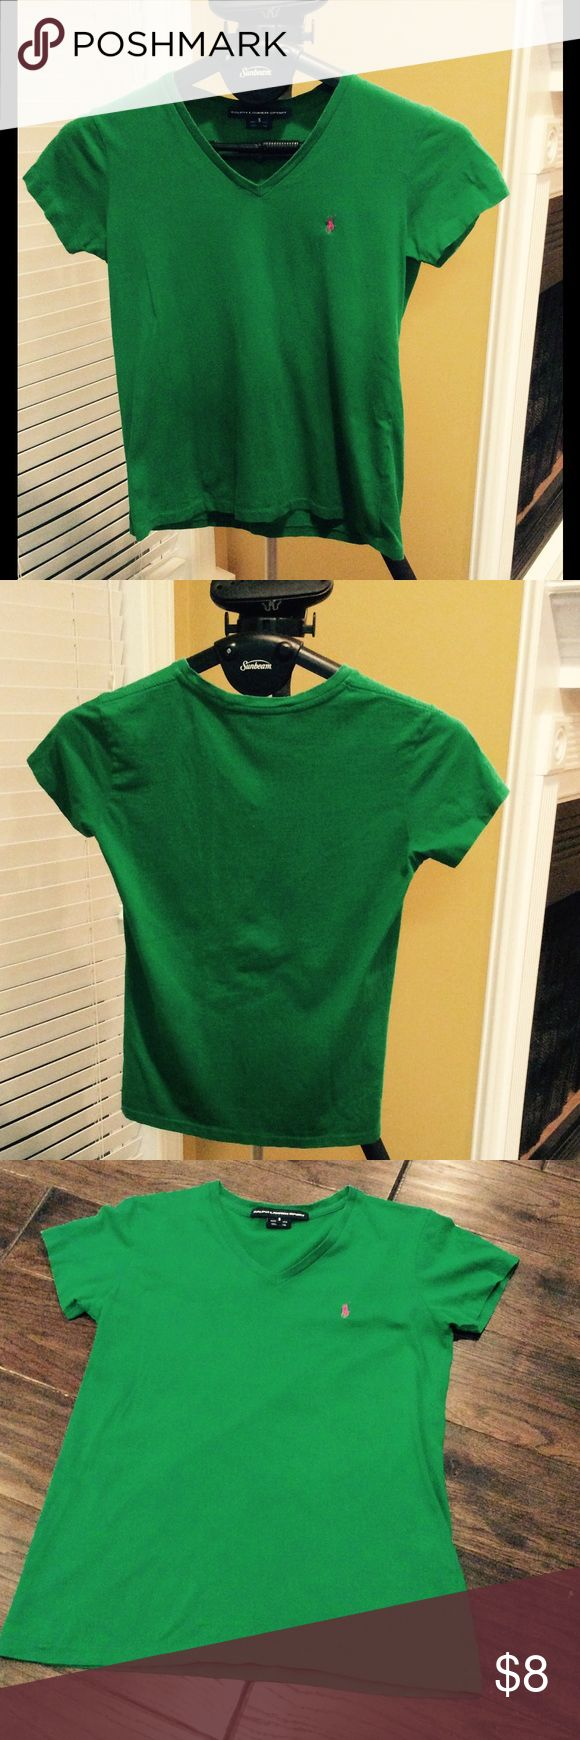 Polo Tee Shirt Green polo tee shirt. In good condition! Polo by Ralph Lauren Tops Tees - Short Sleeve